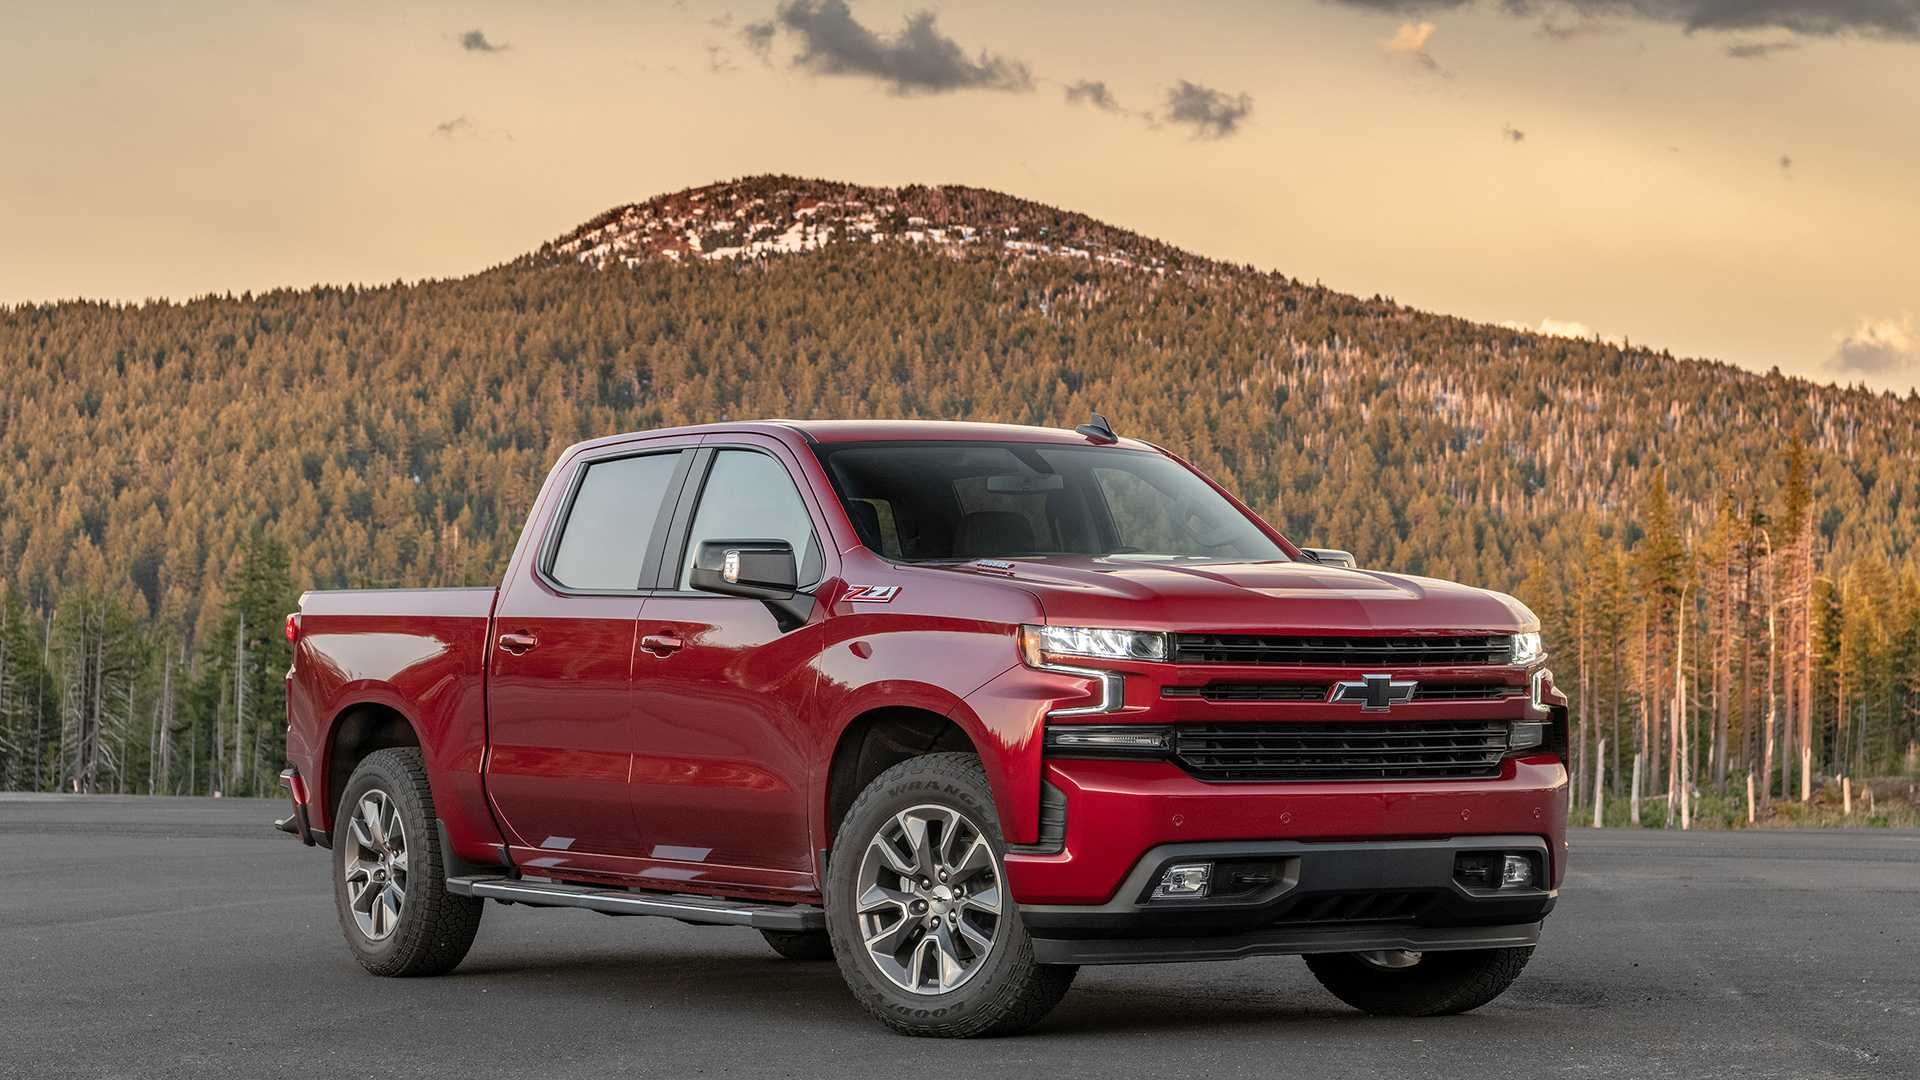 2020 Chevrolet Silverado 1500 Diesel First Drive: An Easy ...